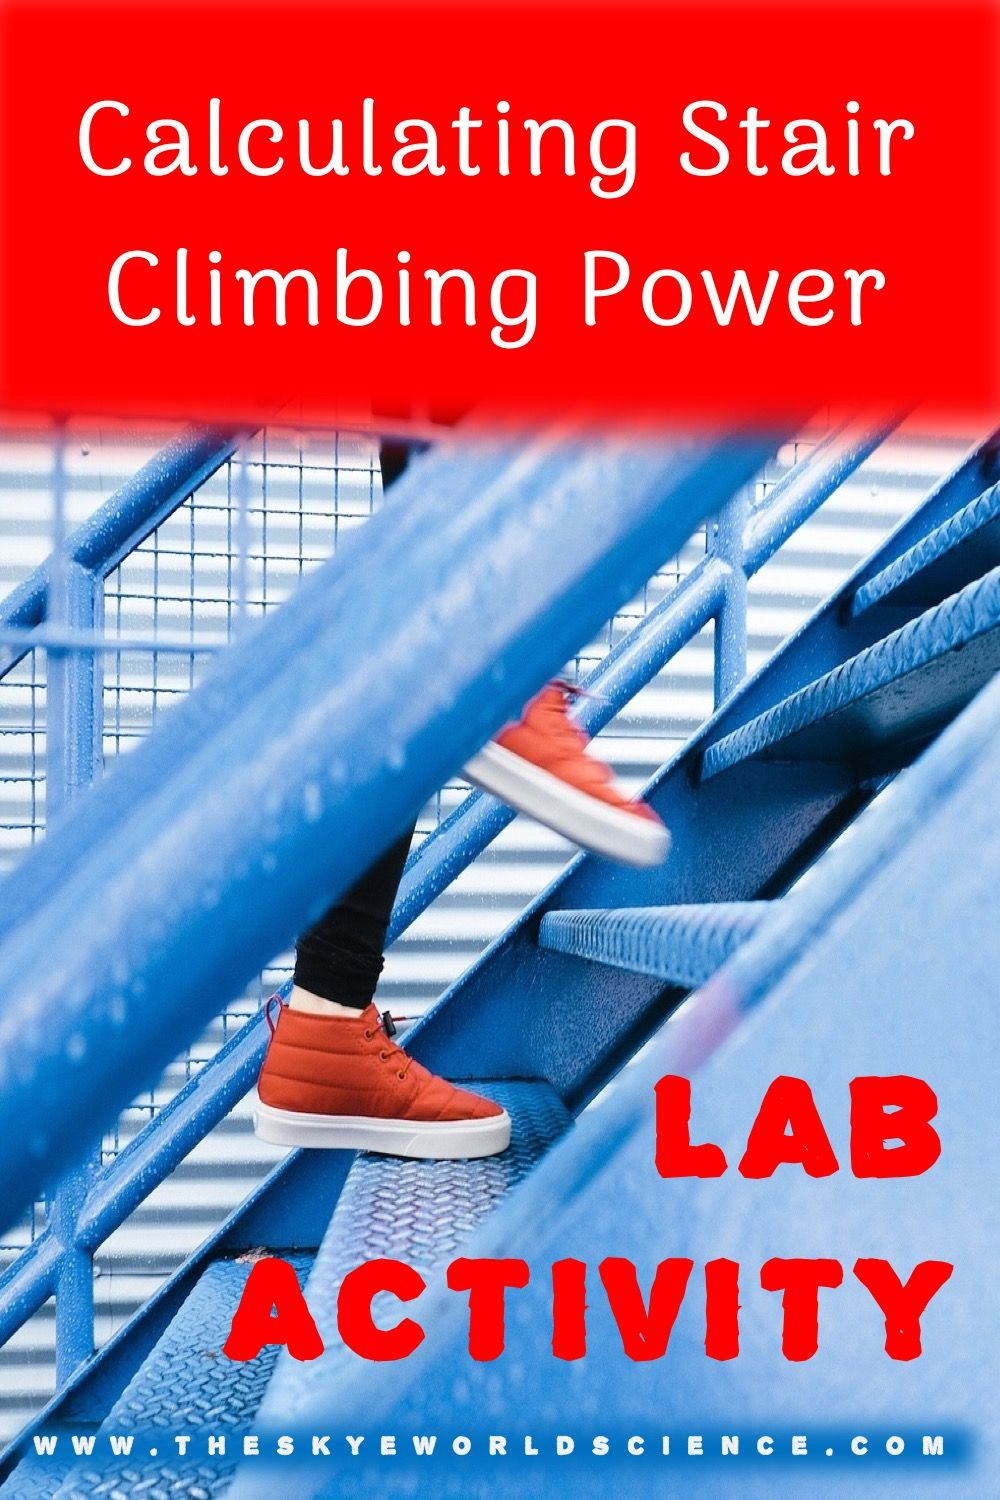 Lab Activity - Calculating Stair Climbing Power | Physics ...